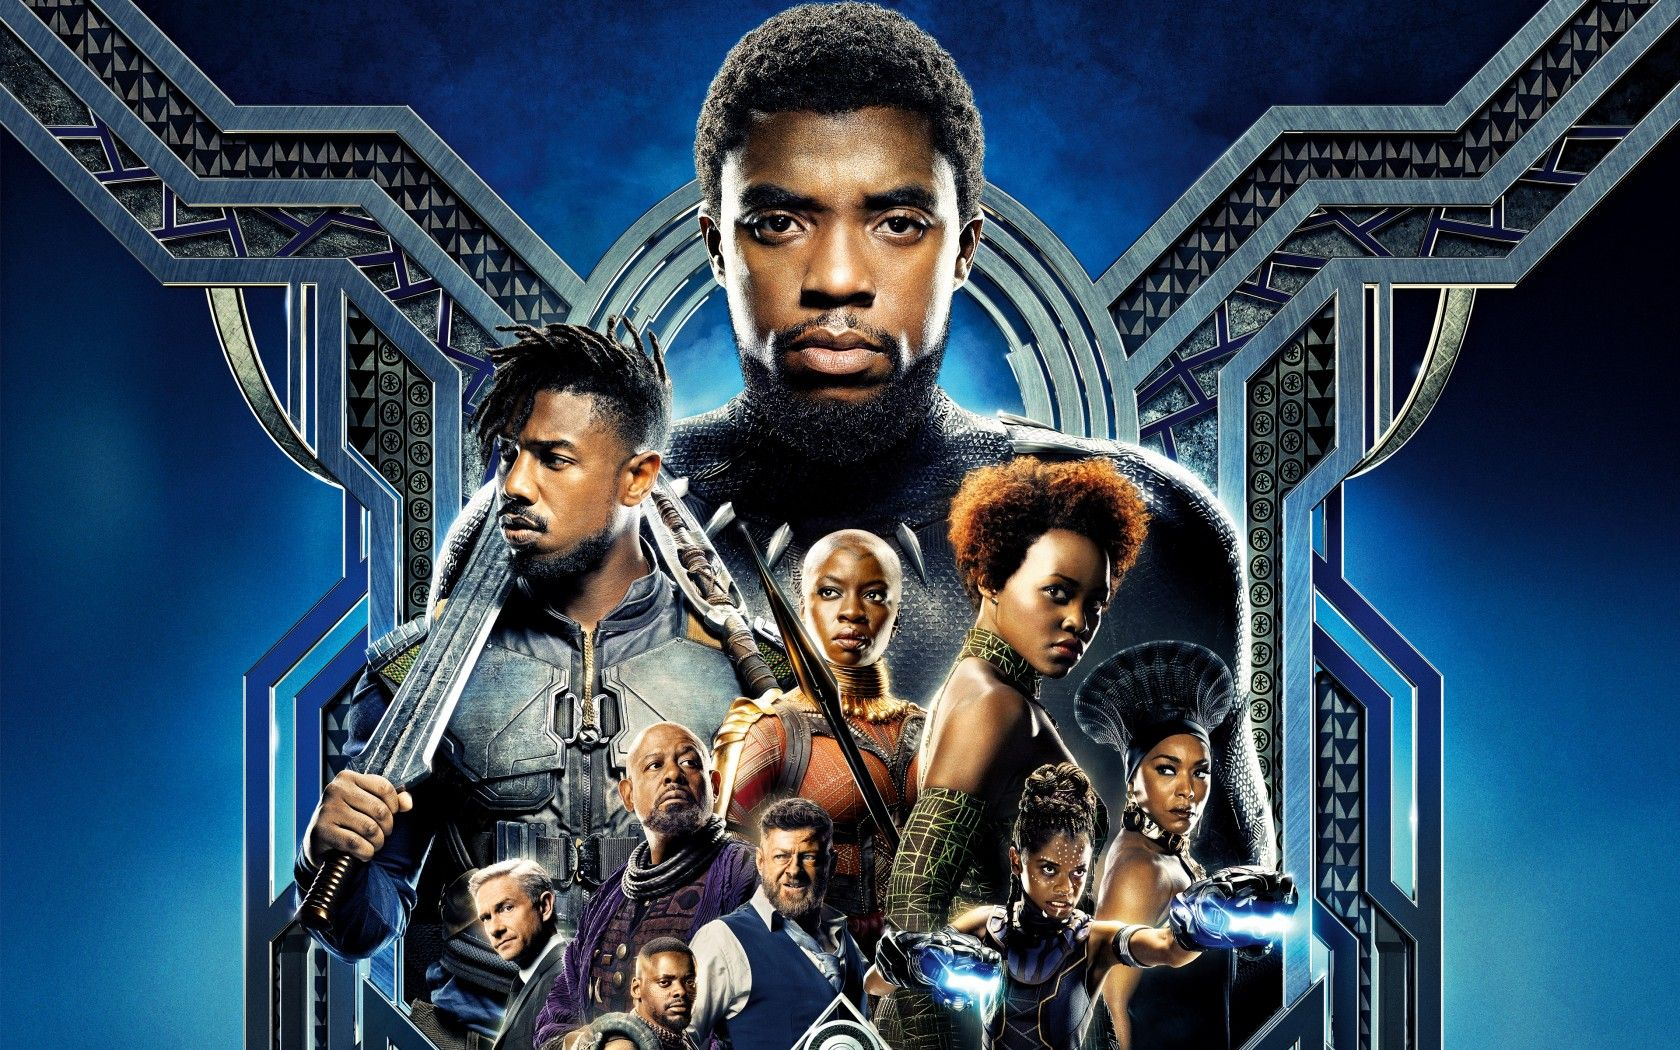 watch black panther online free 123movies